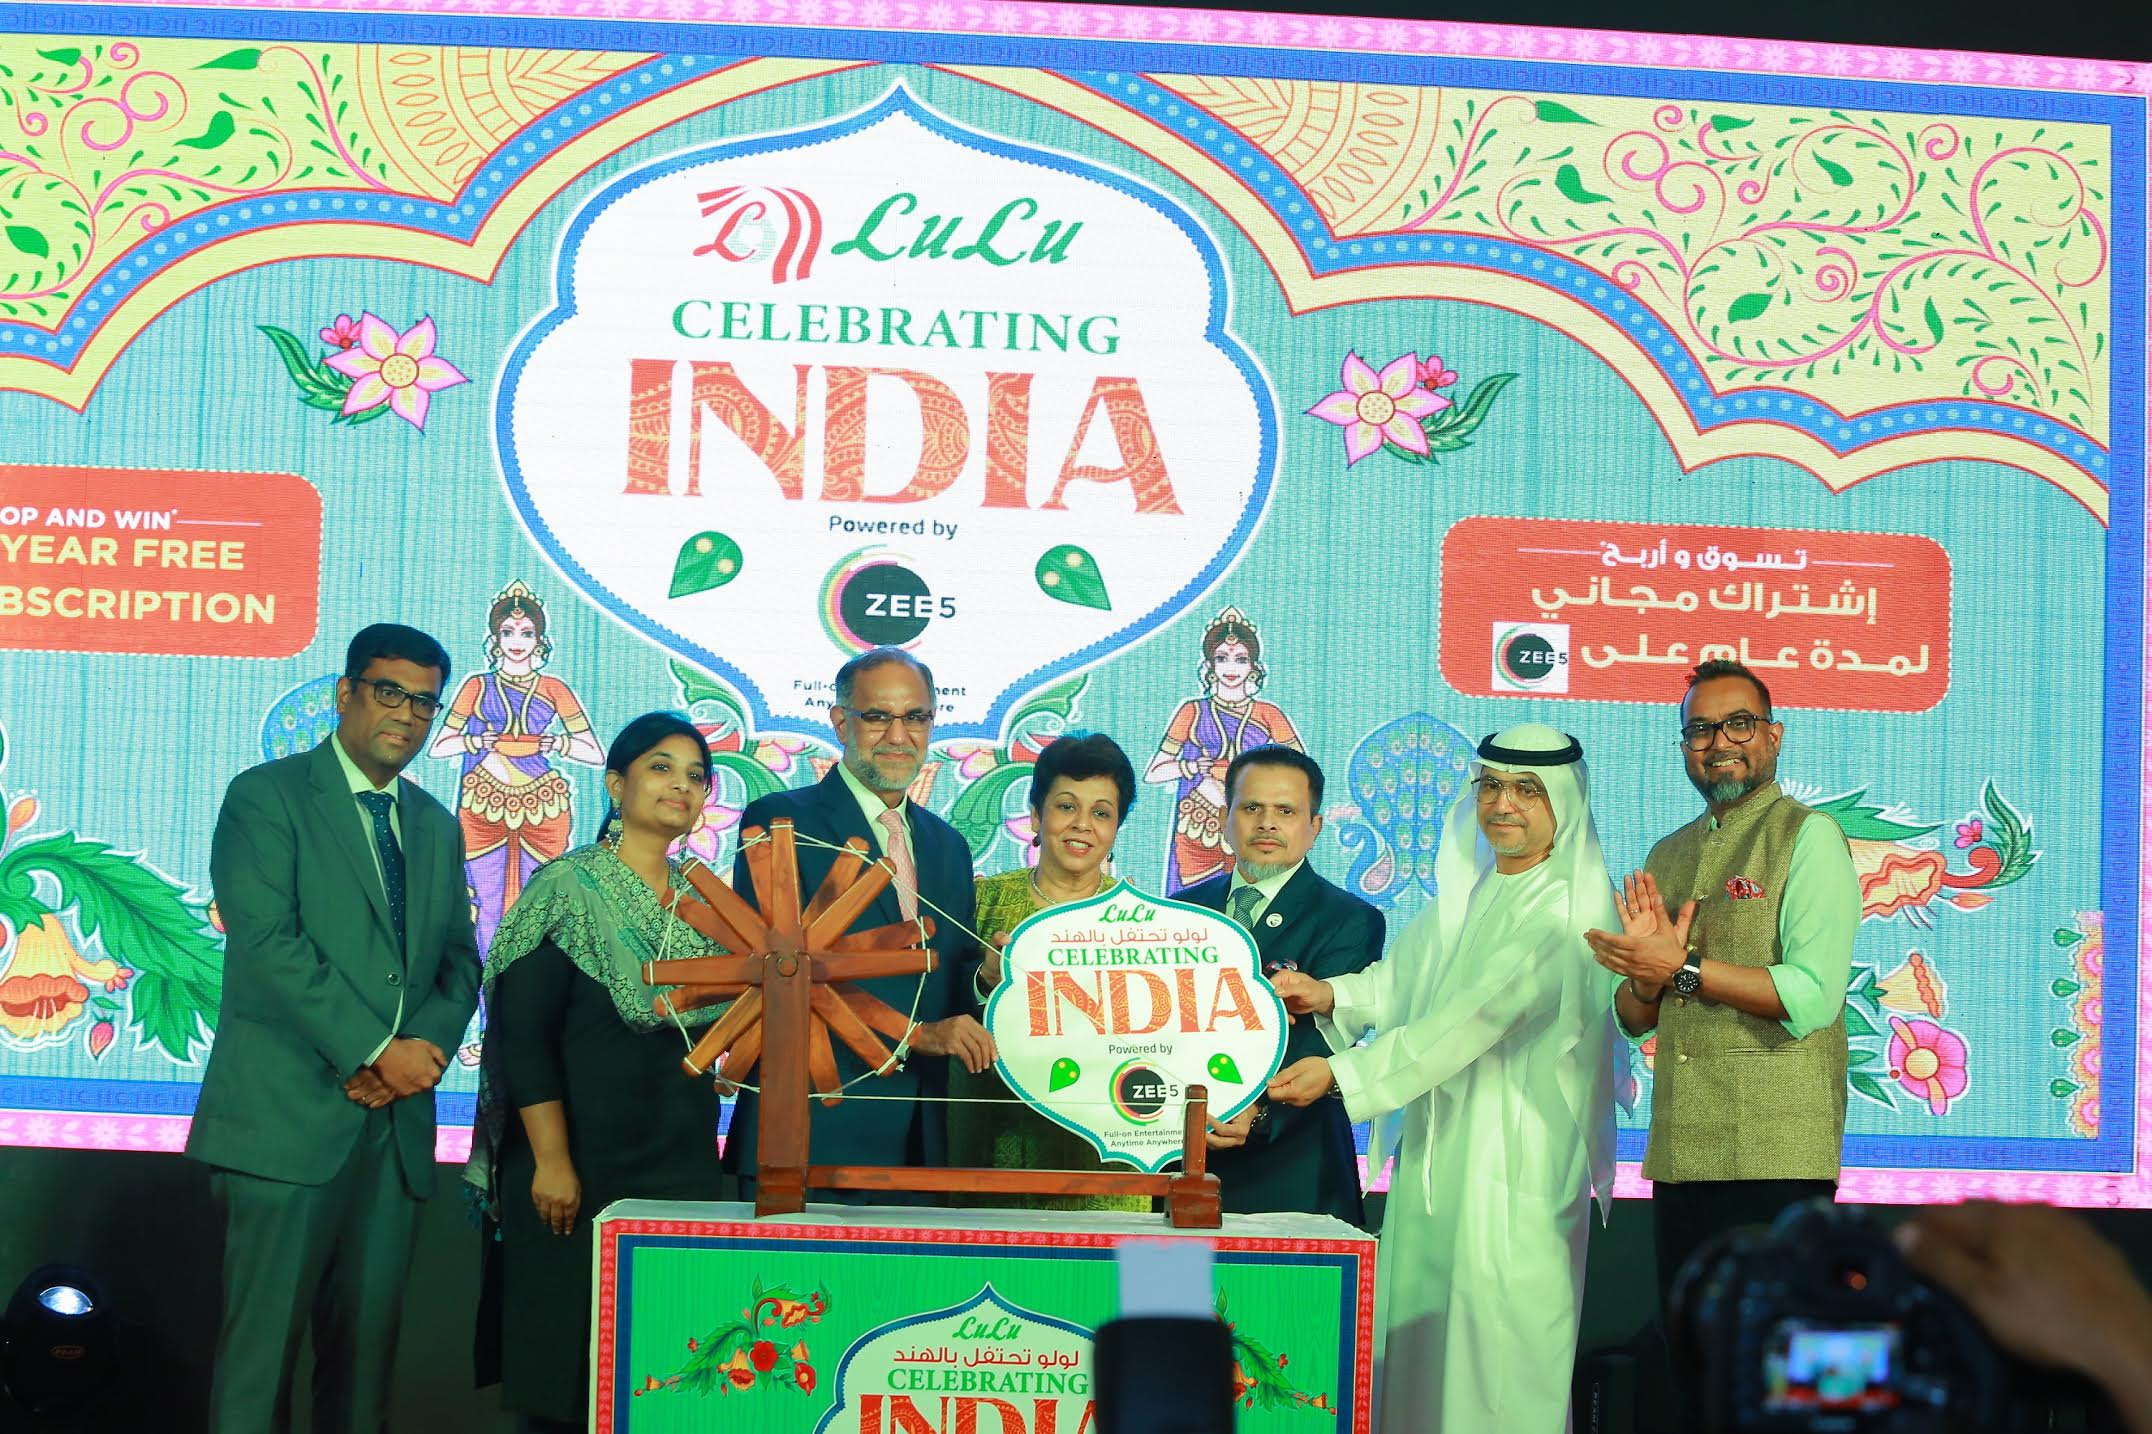 (Left to Right) Lulu Official; Archana Anand, CBO, ZEE5 Global; H.E. Navdeep Suri, Indian Ambassador to the UAE with his wife; Saifee Rupawala, LuLu Group CEO; Arab Govt. official and Nandakumar V, Head of Marketing and Communications, Lulu Group. Photo courtesy: ZEE5